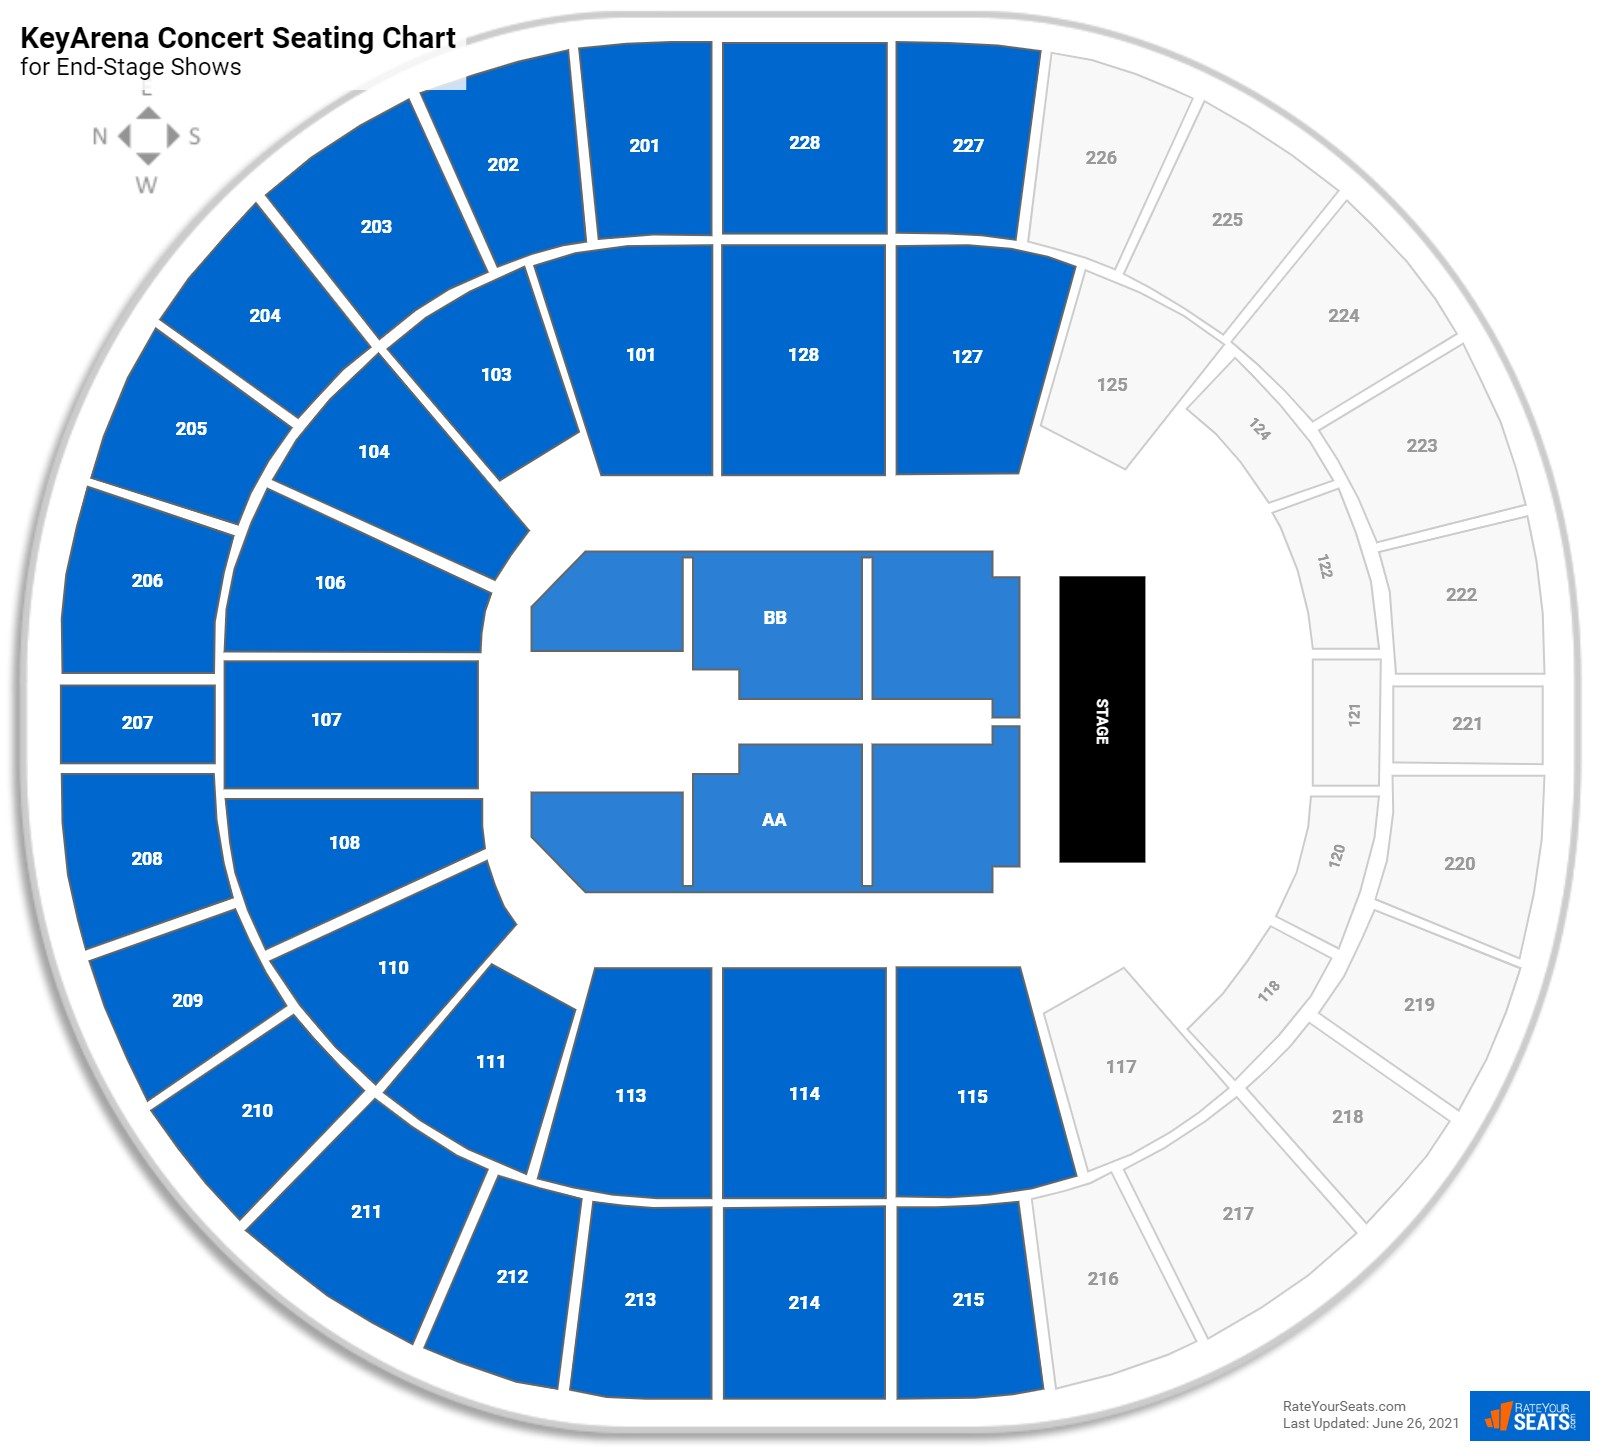 KeyArena Seating Chart for Concerts